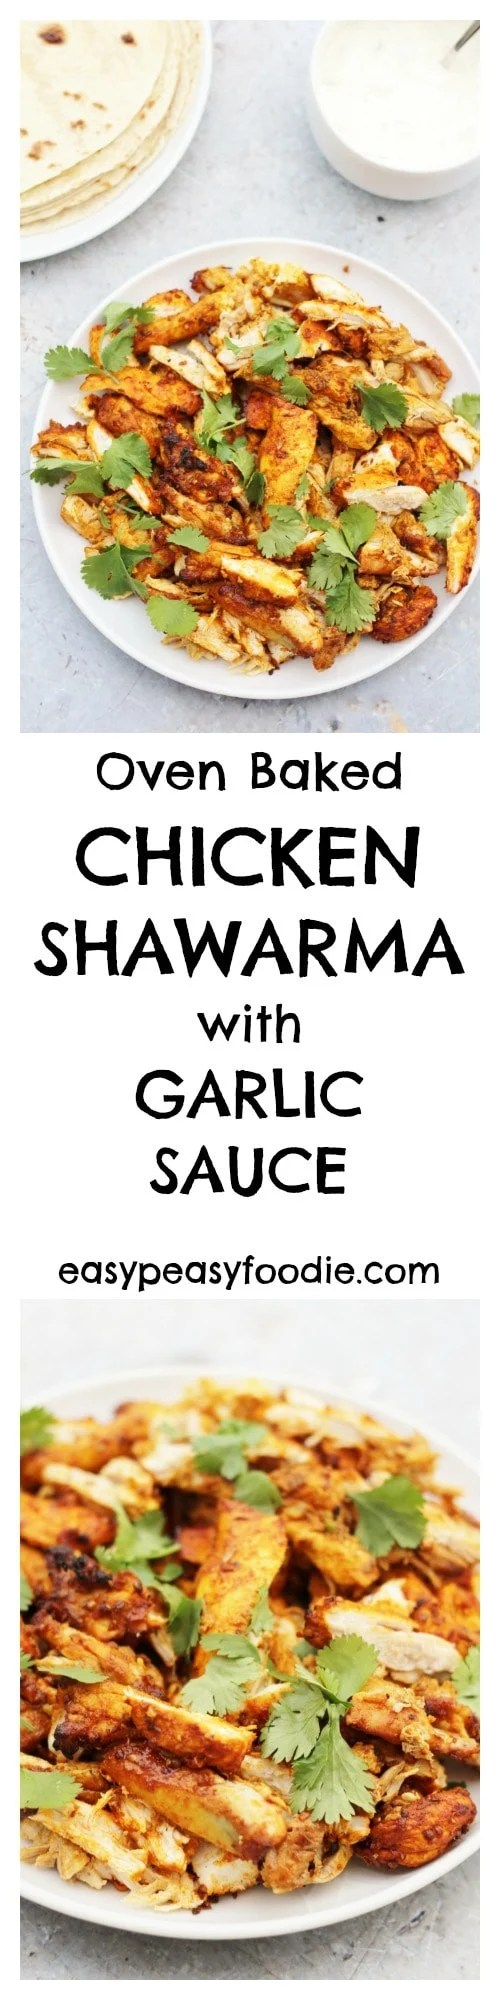 Have you tried chicken shawarma yet? If not then you have been missing a treat – the chicken is simply coated in a deliciously easy marinade, full of gorgeous Middle Eastern spices, and then roasted in the oven for 30 minutes – so simple, but unbelievably good! #chicken #shawarma #ovenbaked #middleeastern #garlicsauce #yogurtsauce #greekyogurt #healthydinners #easydinners #midweekmeals #easyentertaining #familydinners #mezze #makeahead #easypeasyfoodie